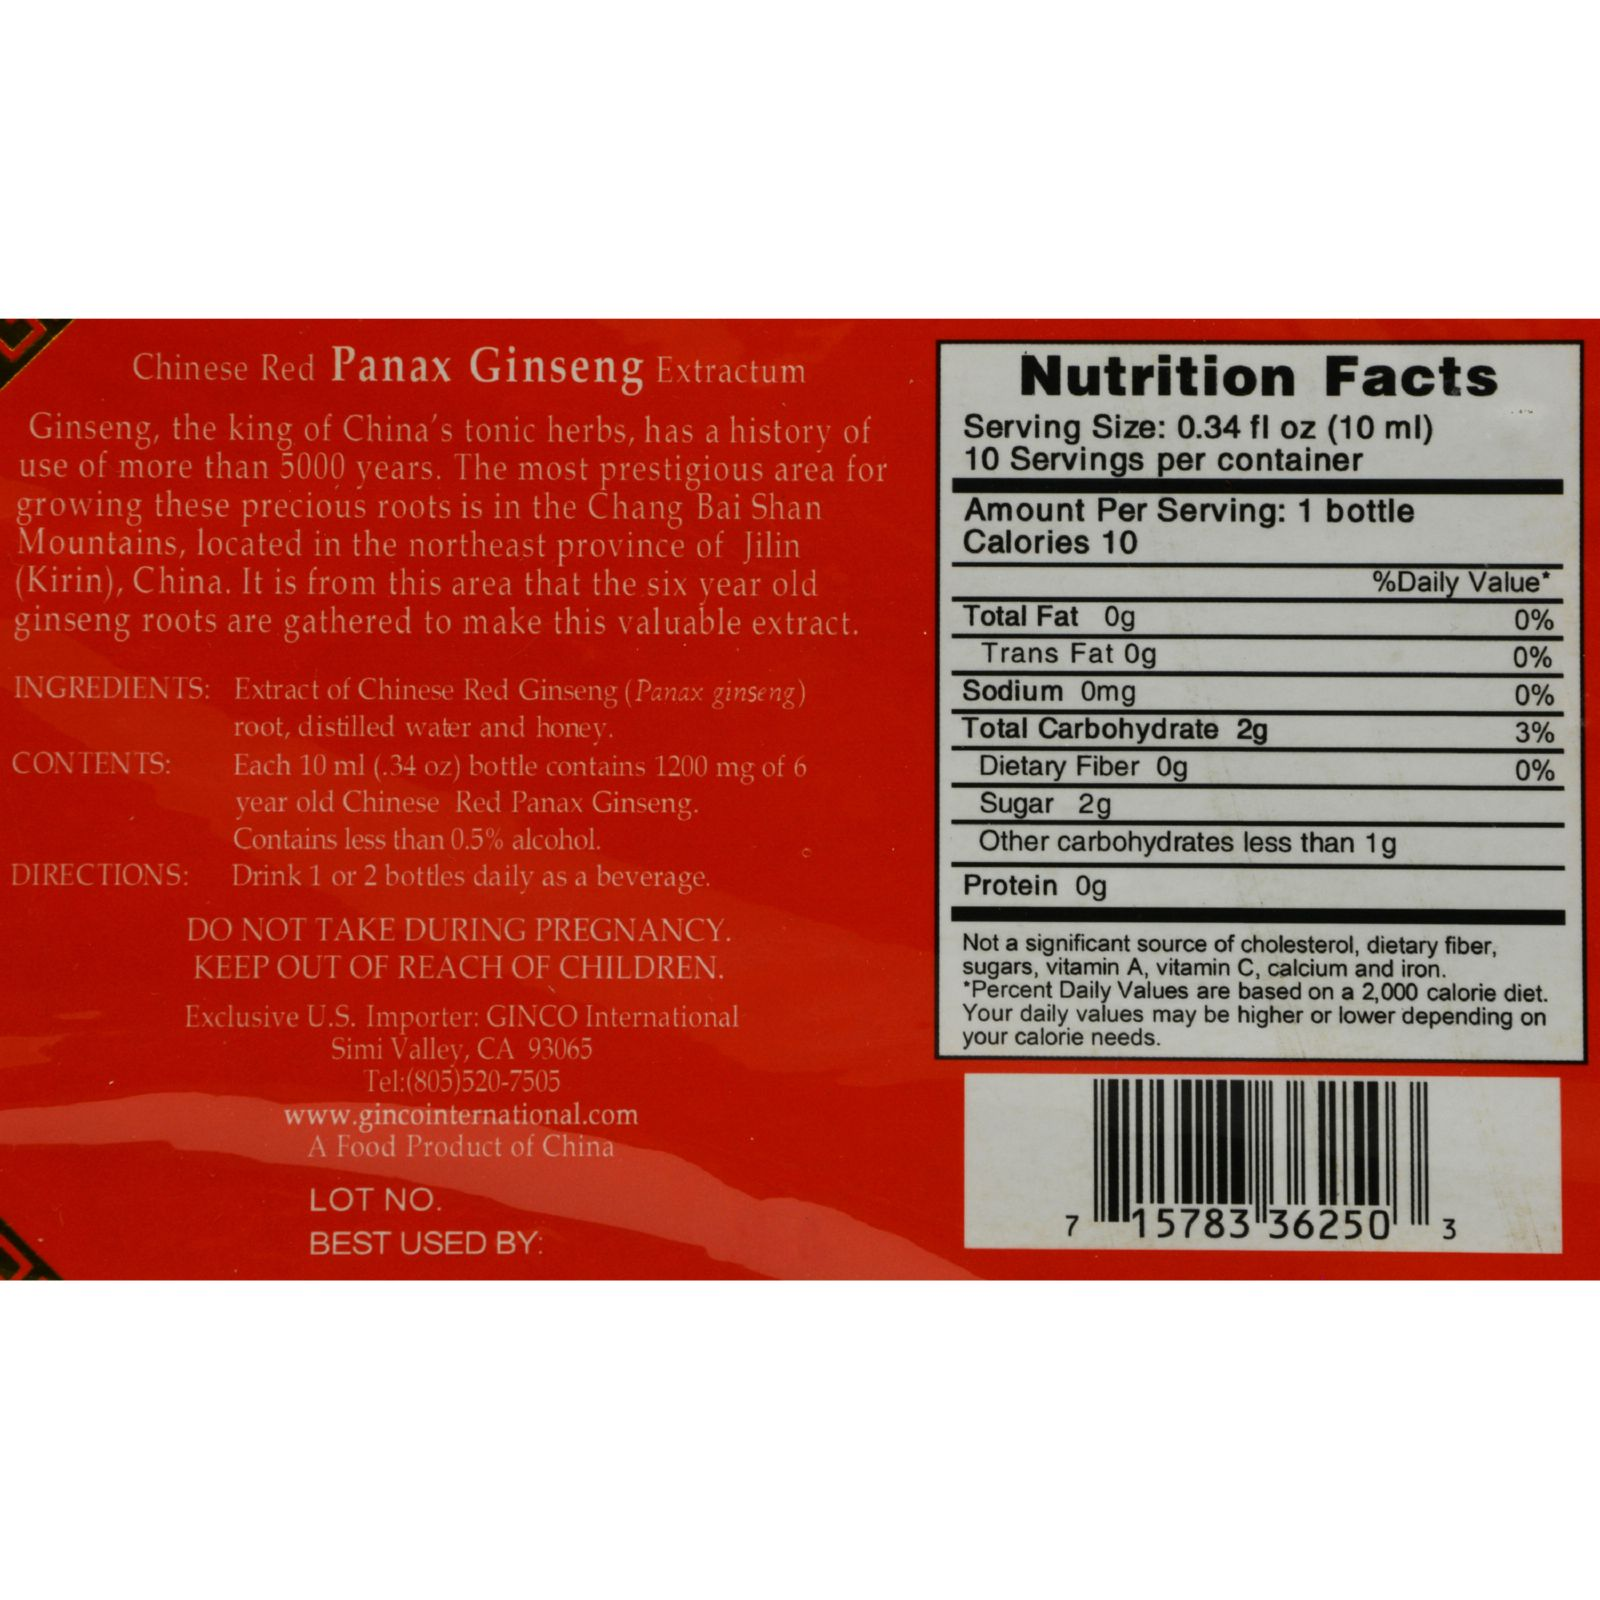 Imperial Elixir Chinese Red Panax Ginseng Extractum